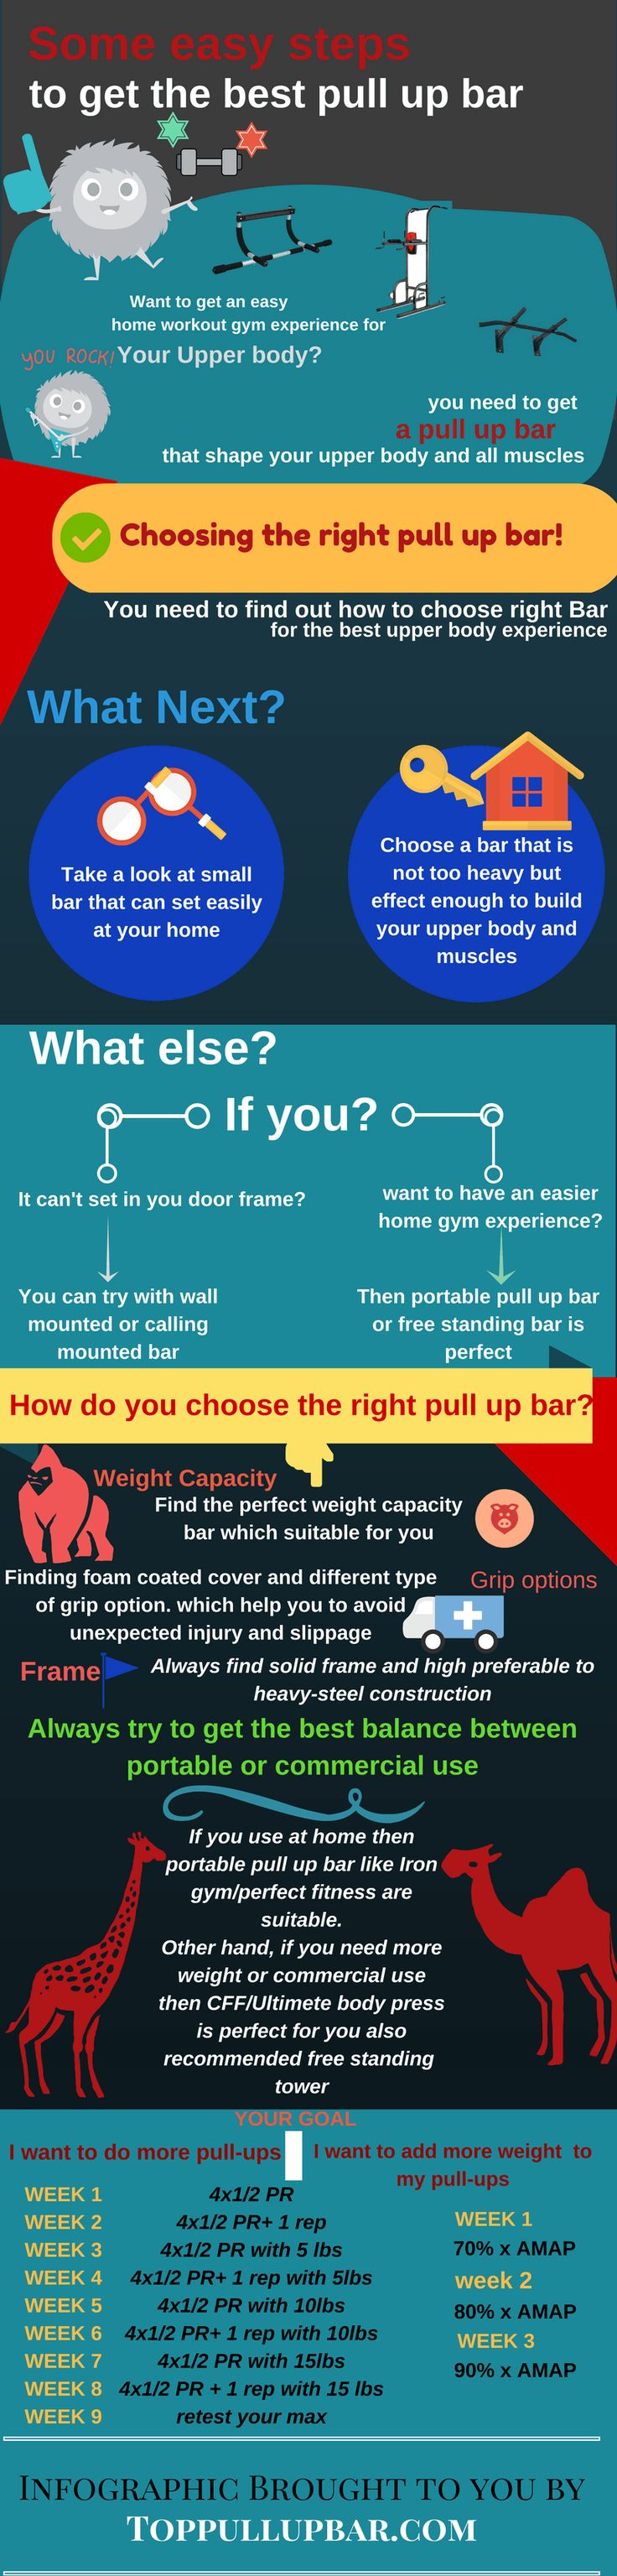 Infographic best pull up bar